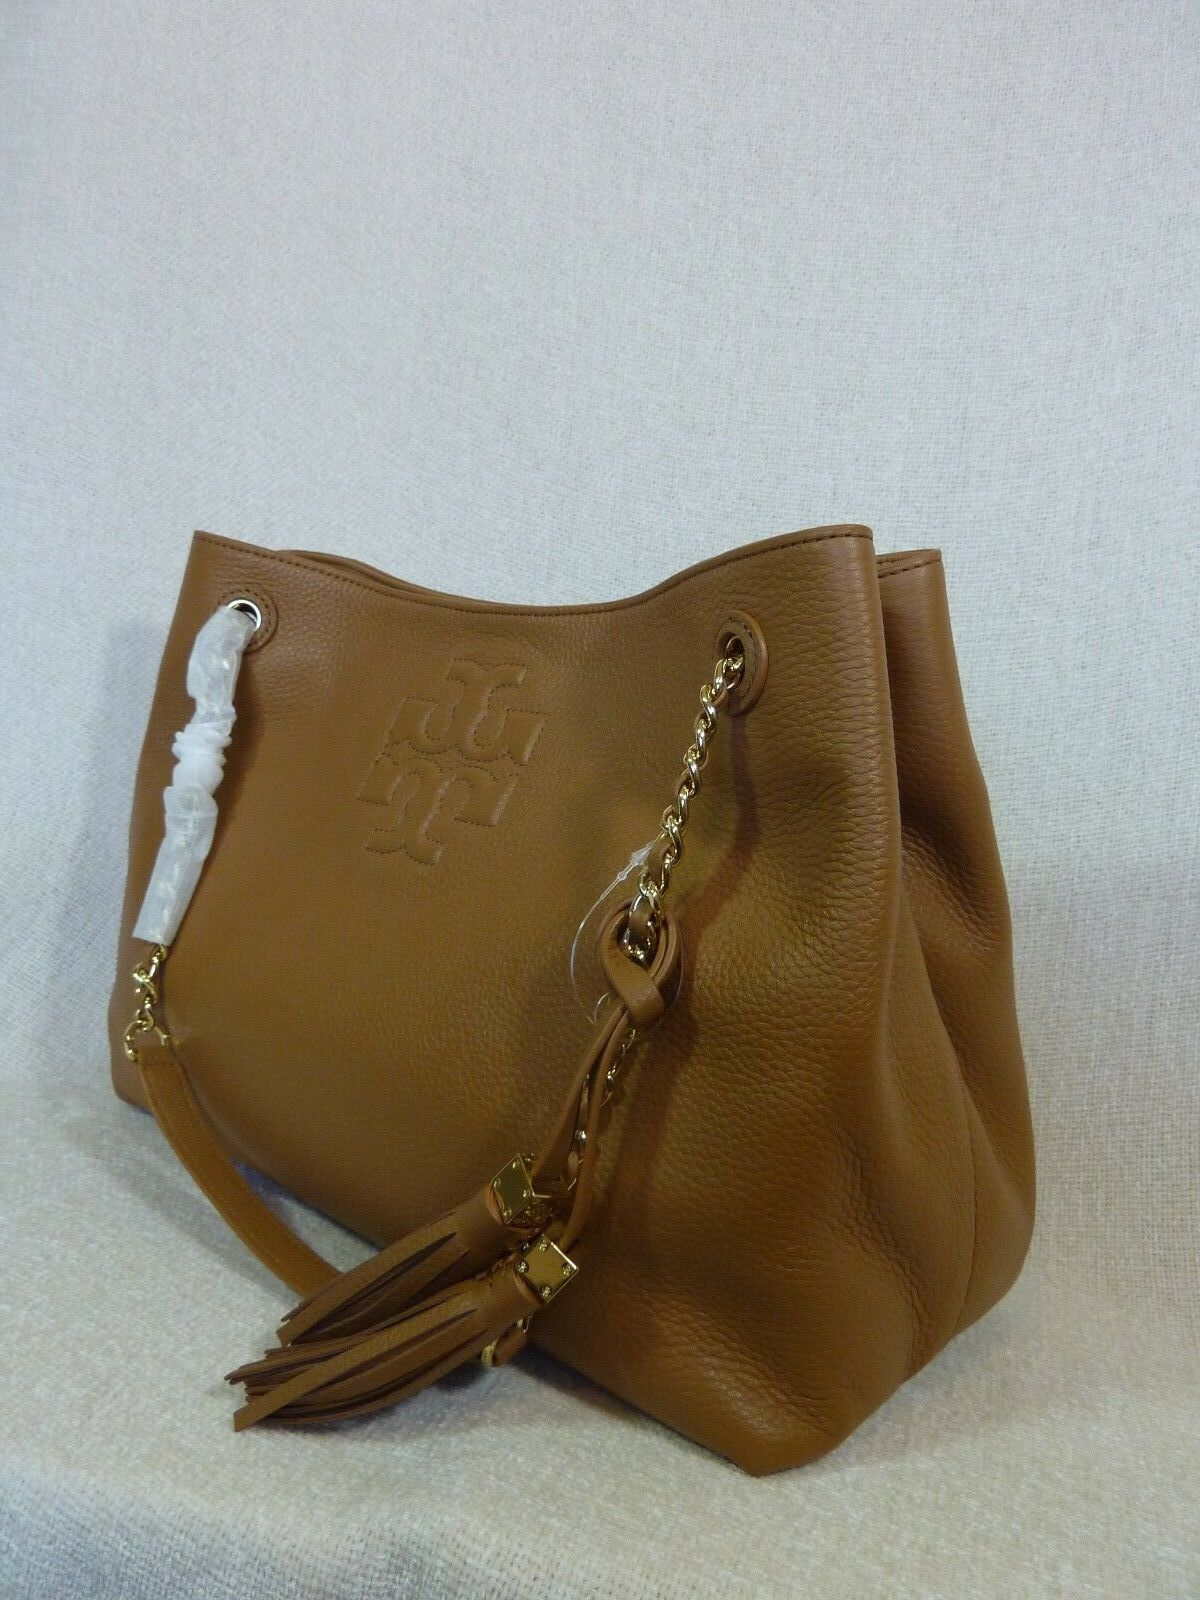 NWT Tory Burch Bark Brown Pebbled Leather Thea Chain Slouchy Tote $495 image 6